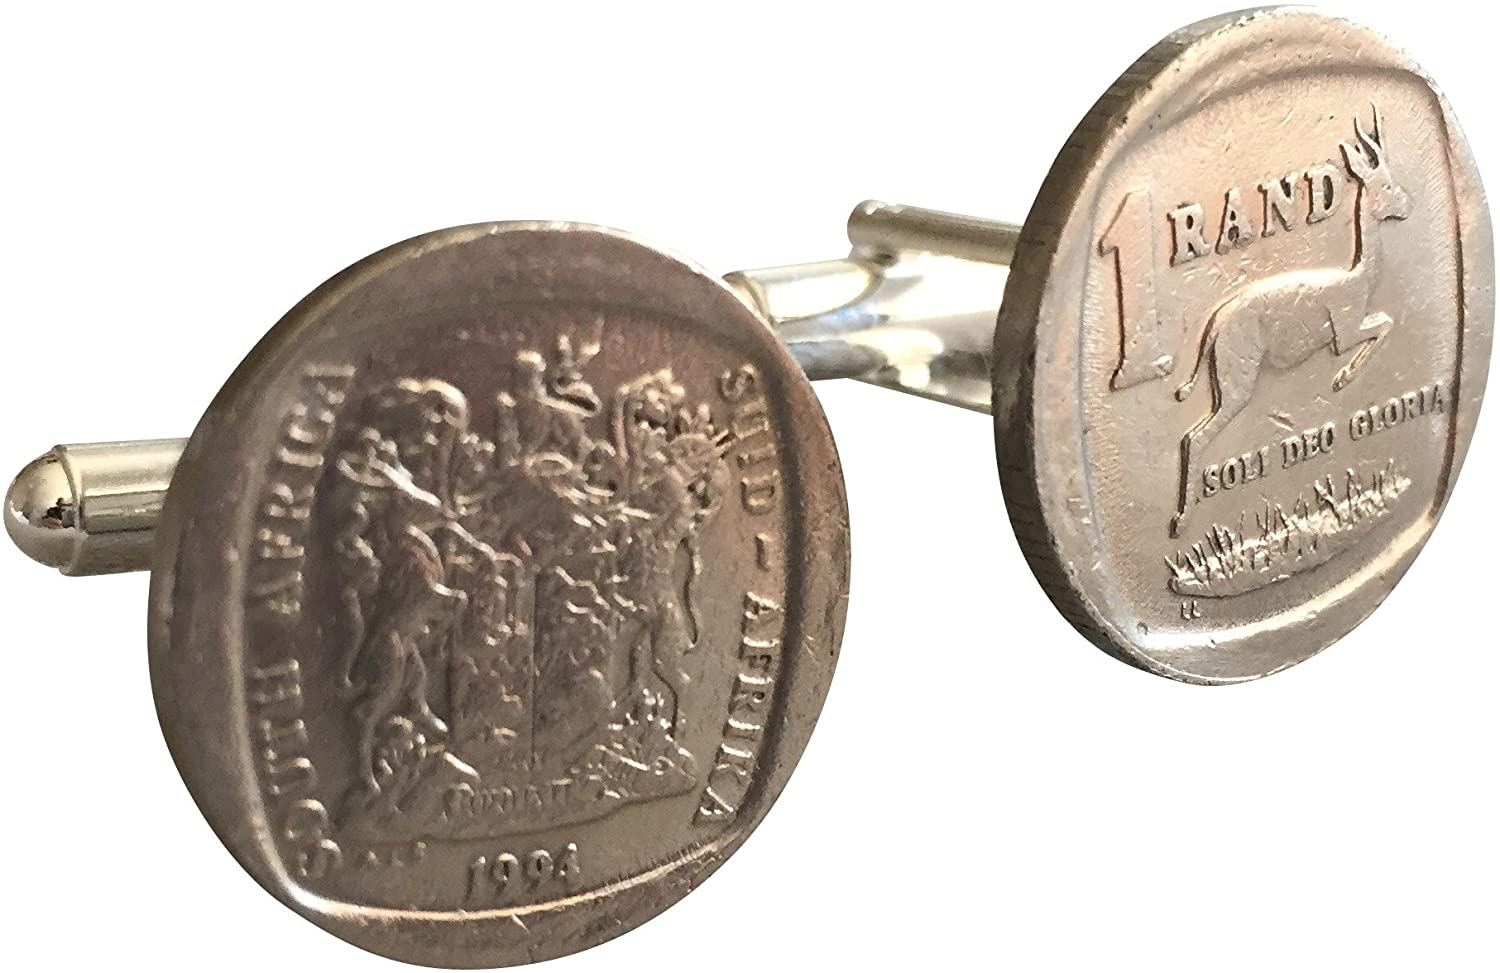 Ammo Gift Box Authentic 1 Rand South Africa Vintage Coin Cufflinks